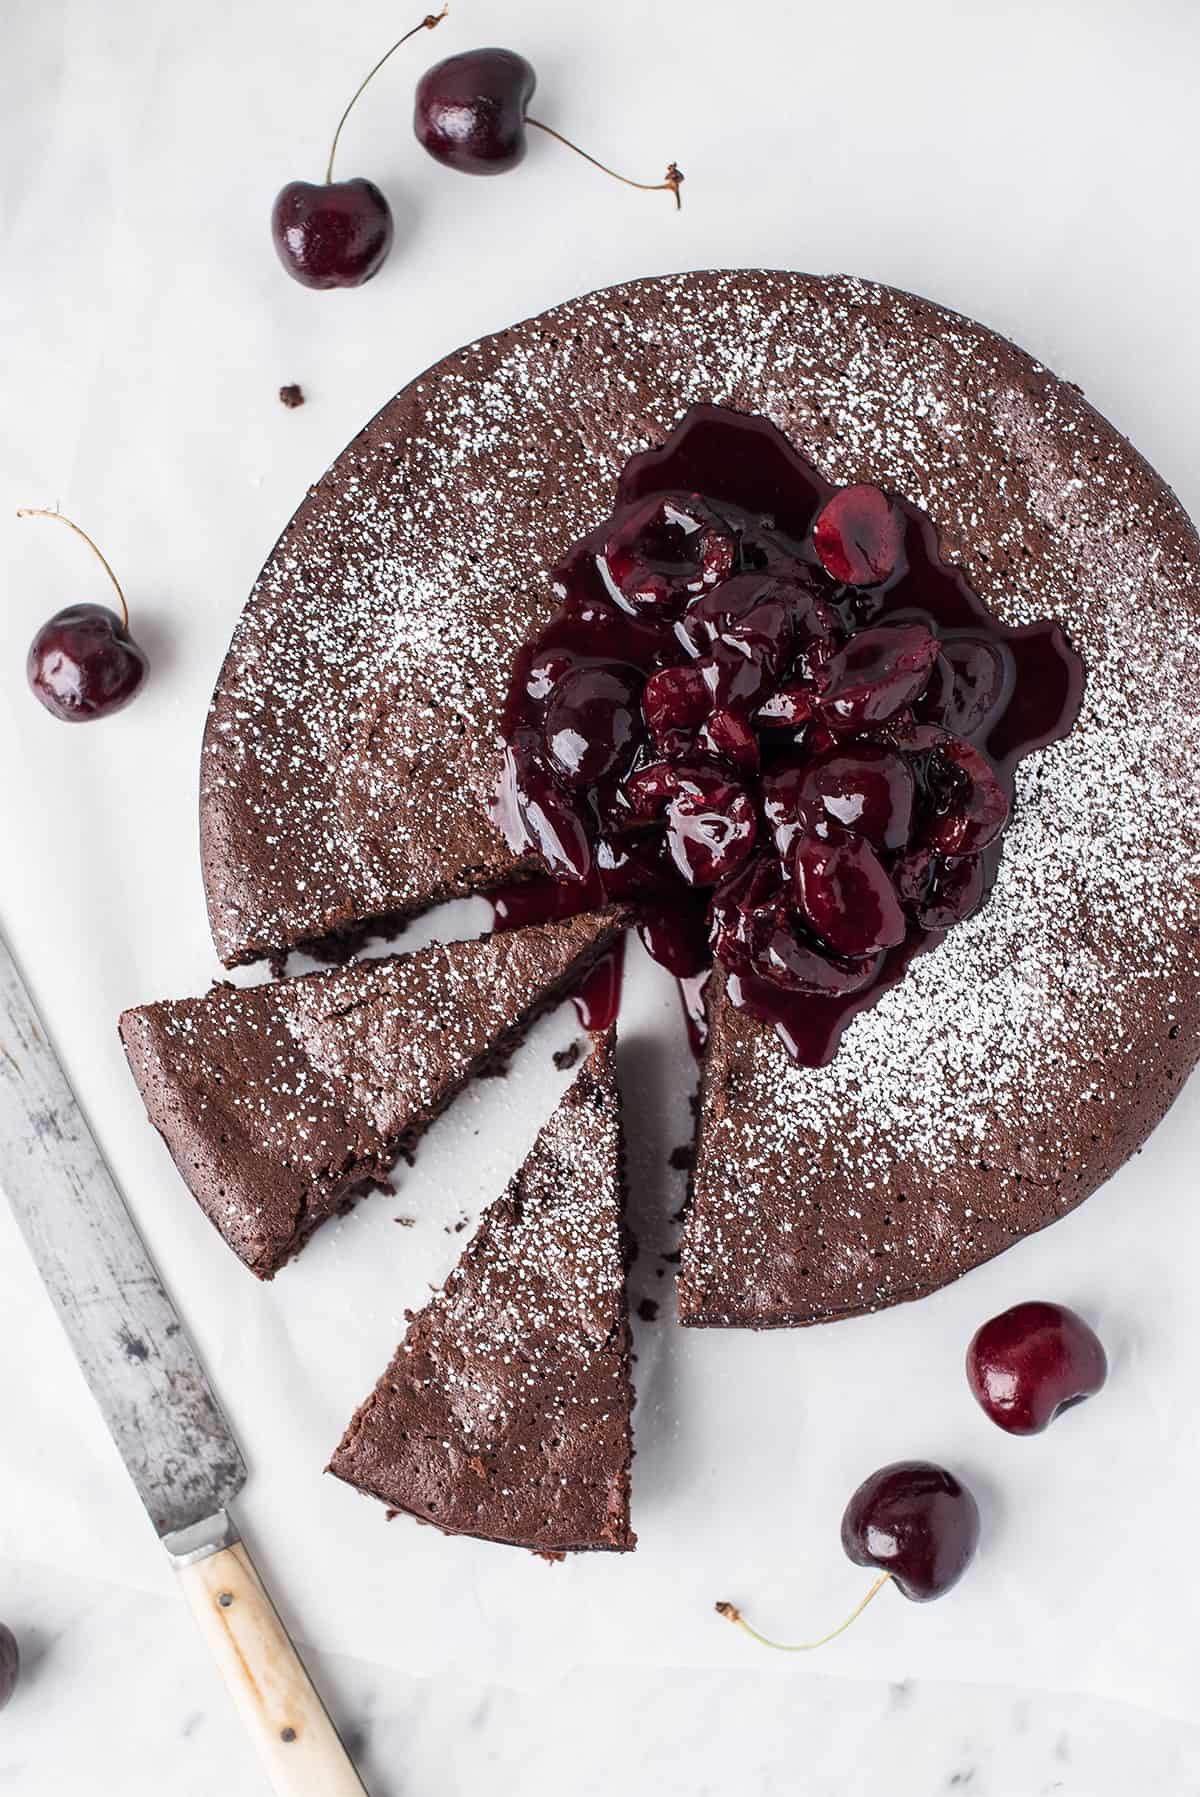 dark chocolate torte with bing cherry compote, sliced with knife